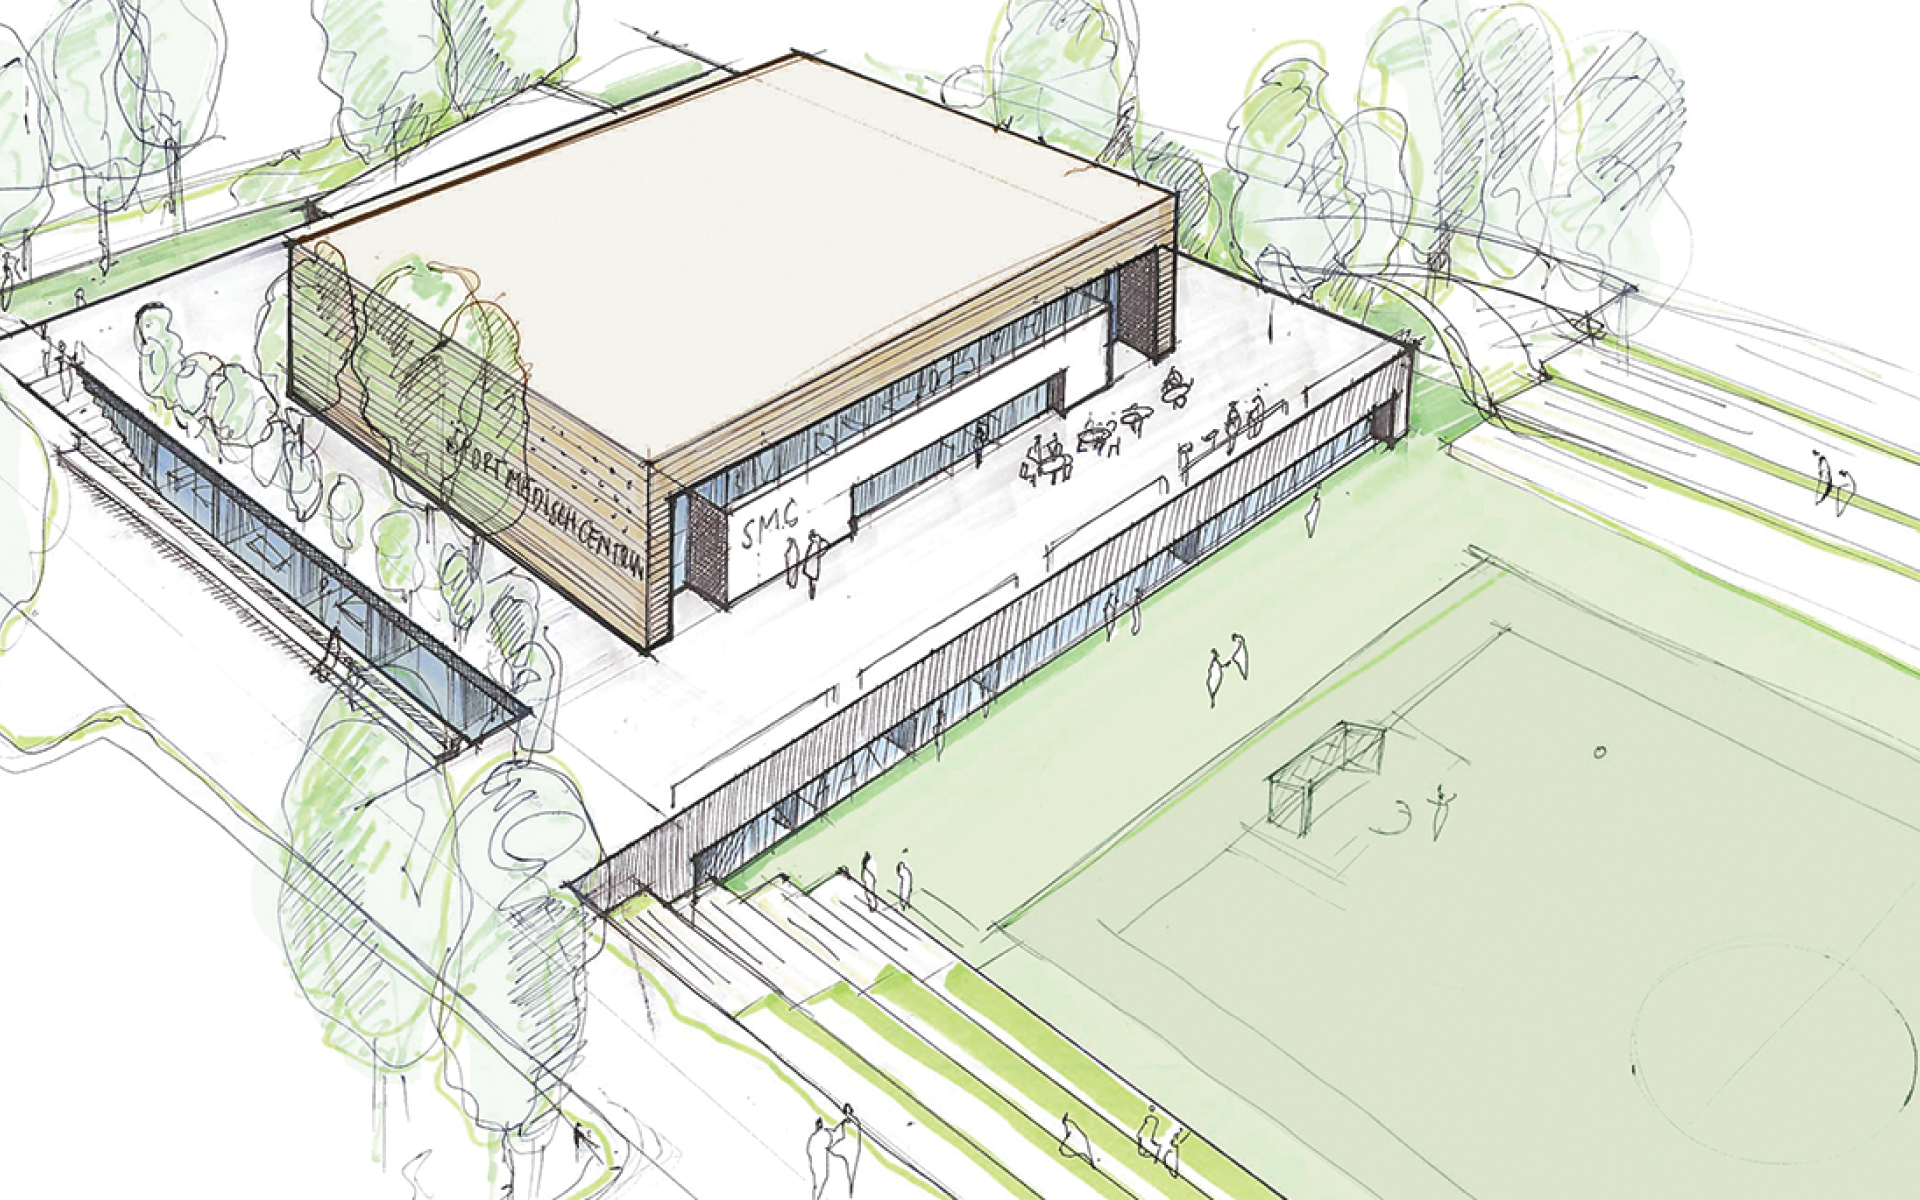 KNVB Campus Zeist DAY Creative Sketch Vision on brand and experience